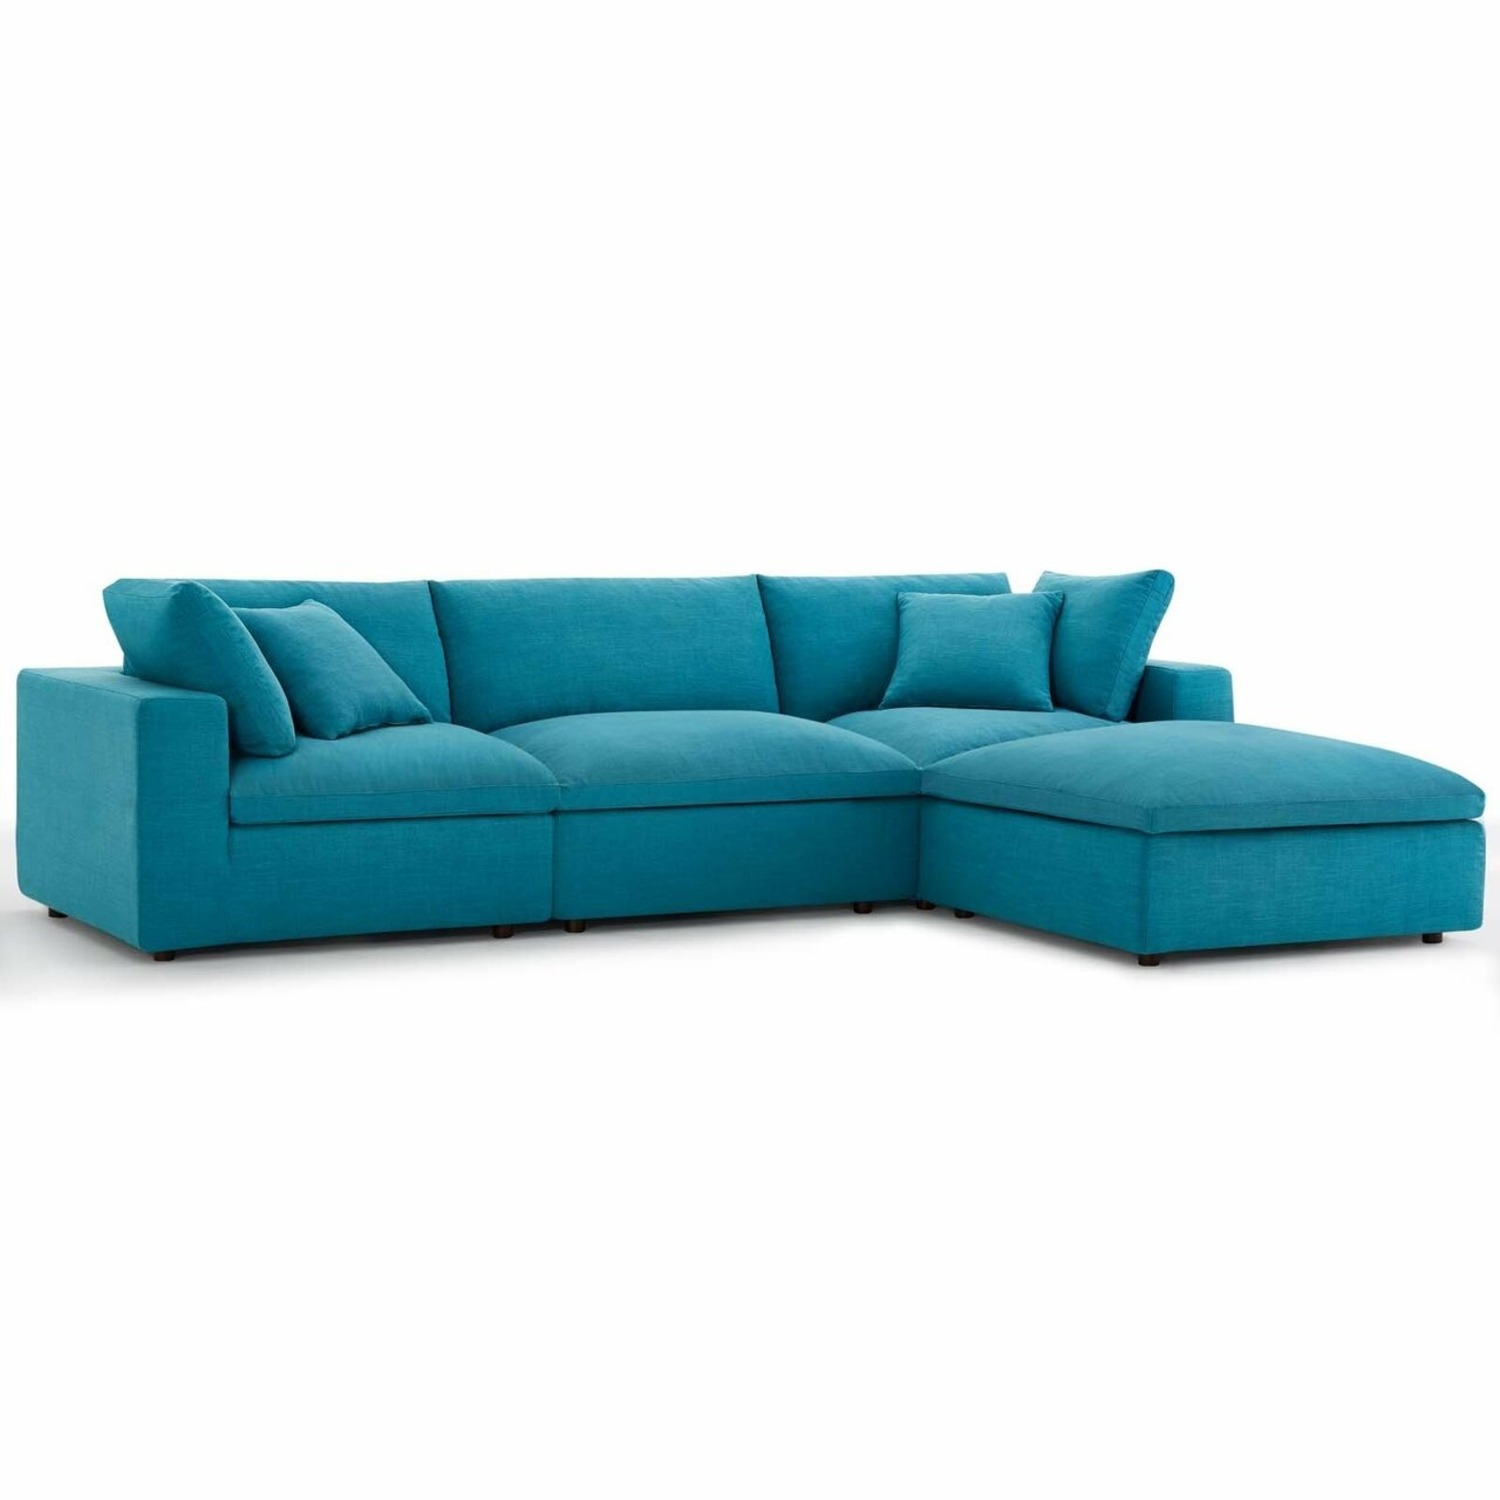 4-Piece Sectional In Teal Polyester & Linen Fabric - image-0